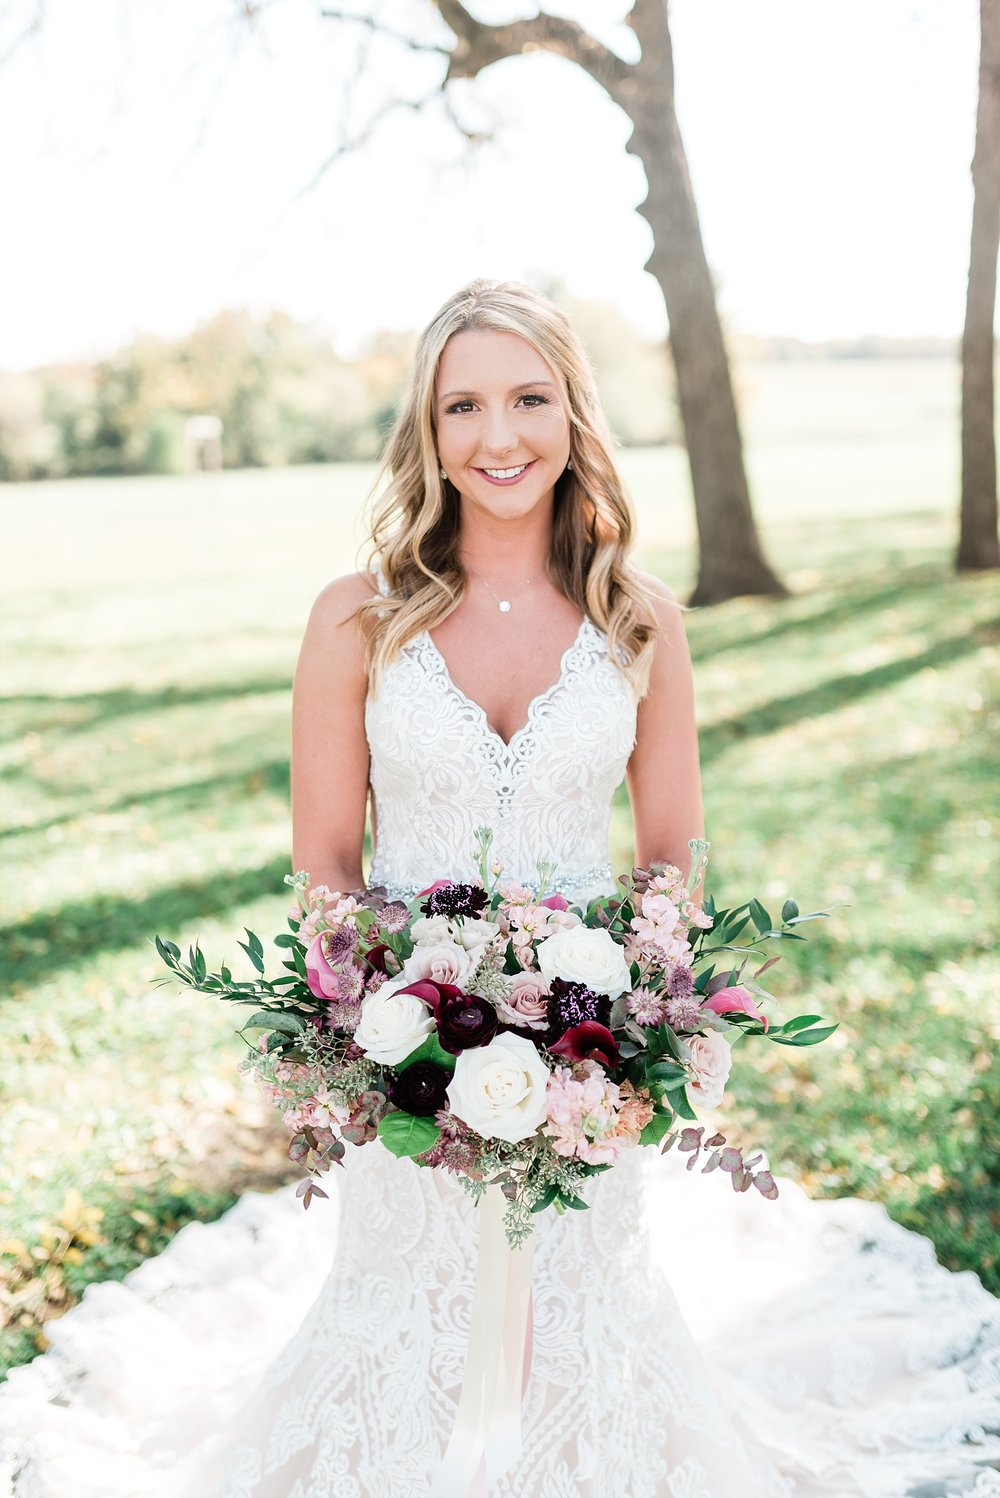 Golden Autumn Outdoor Wedding with Ivory, Bergundy, and Blush Color Palette at Blue Bell Farms  by Kelsi Kliethermes Photography_0066.jpg